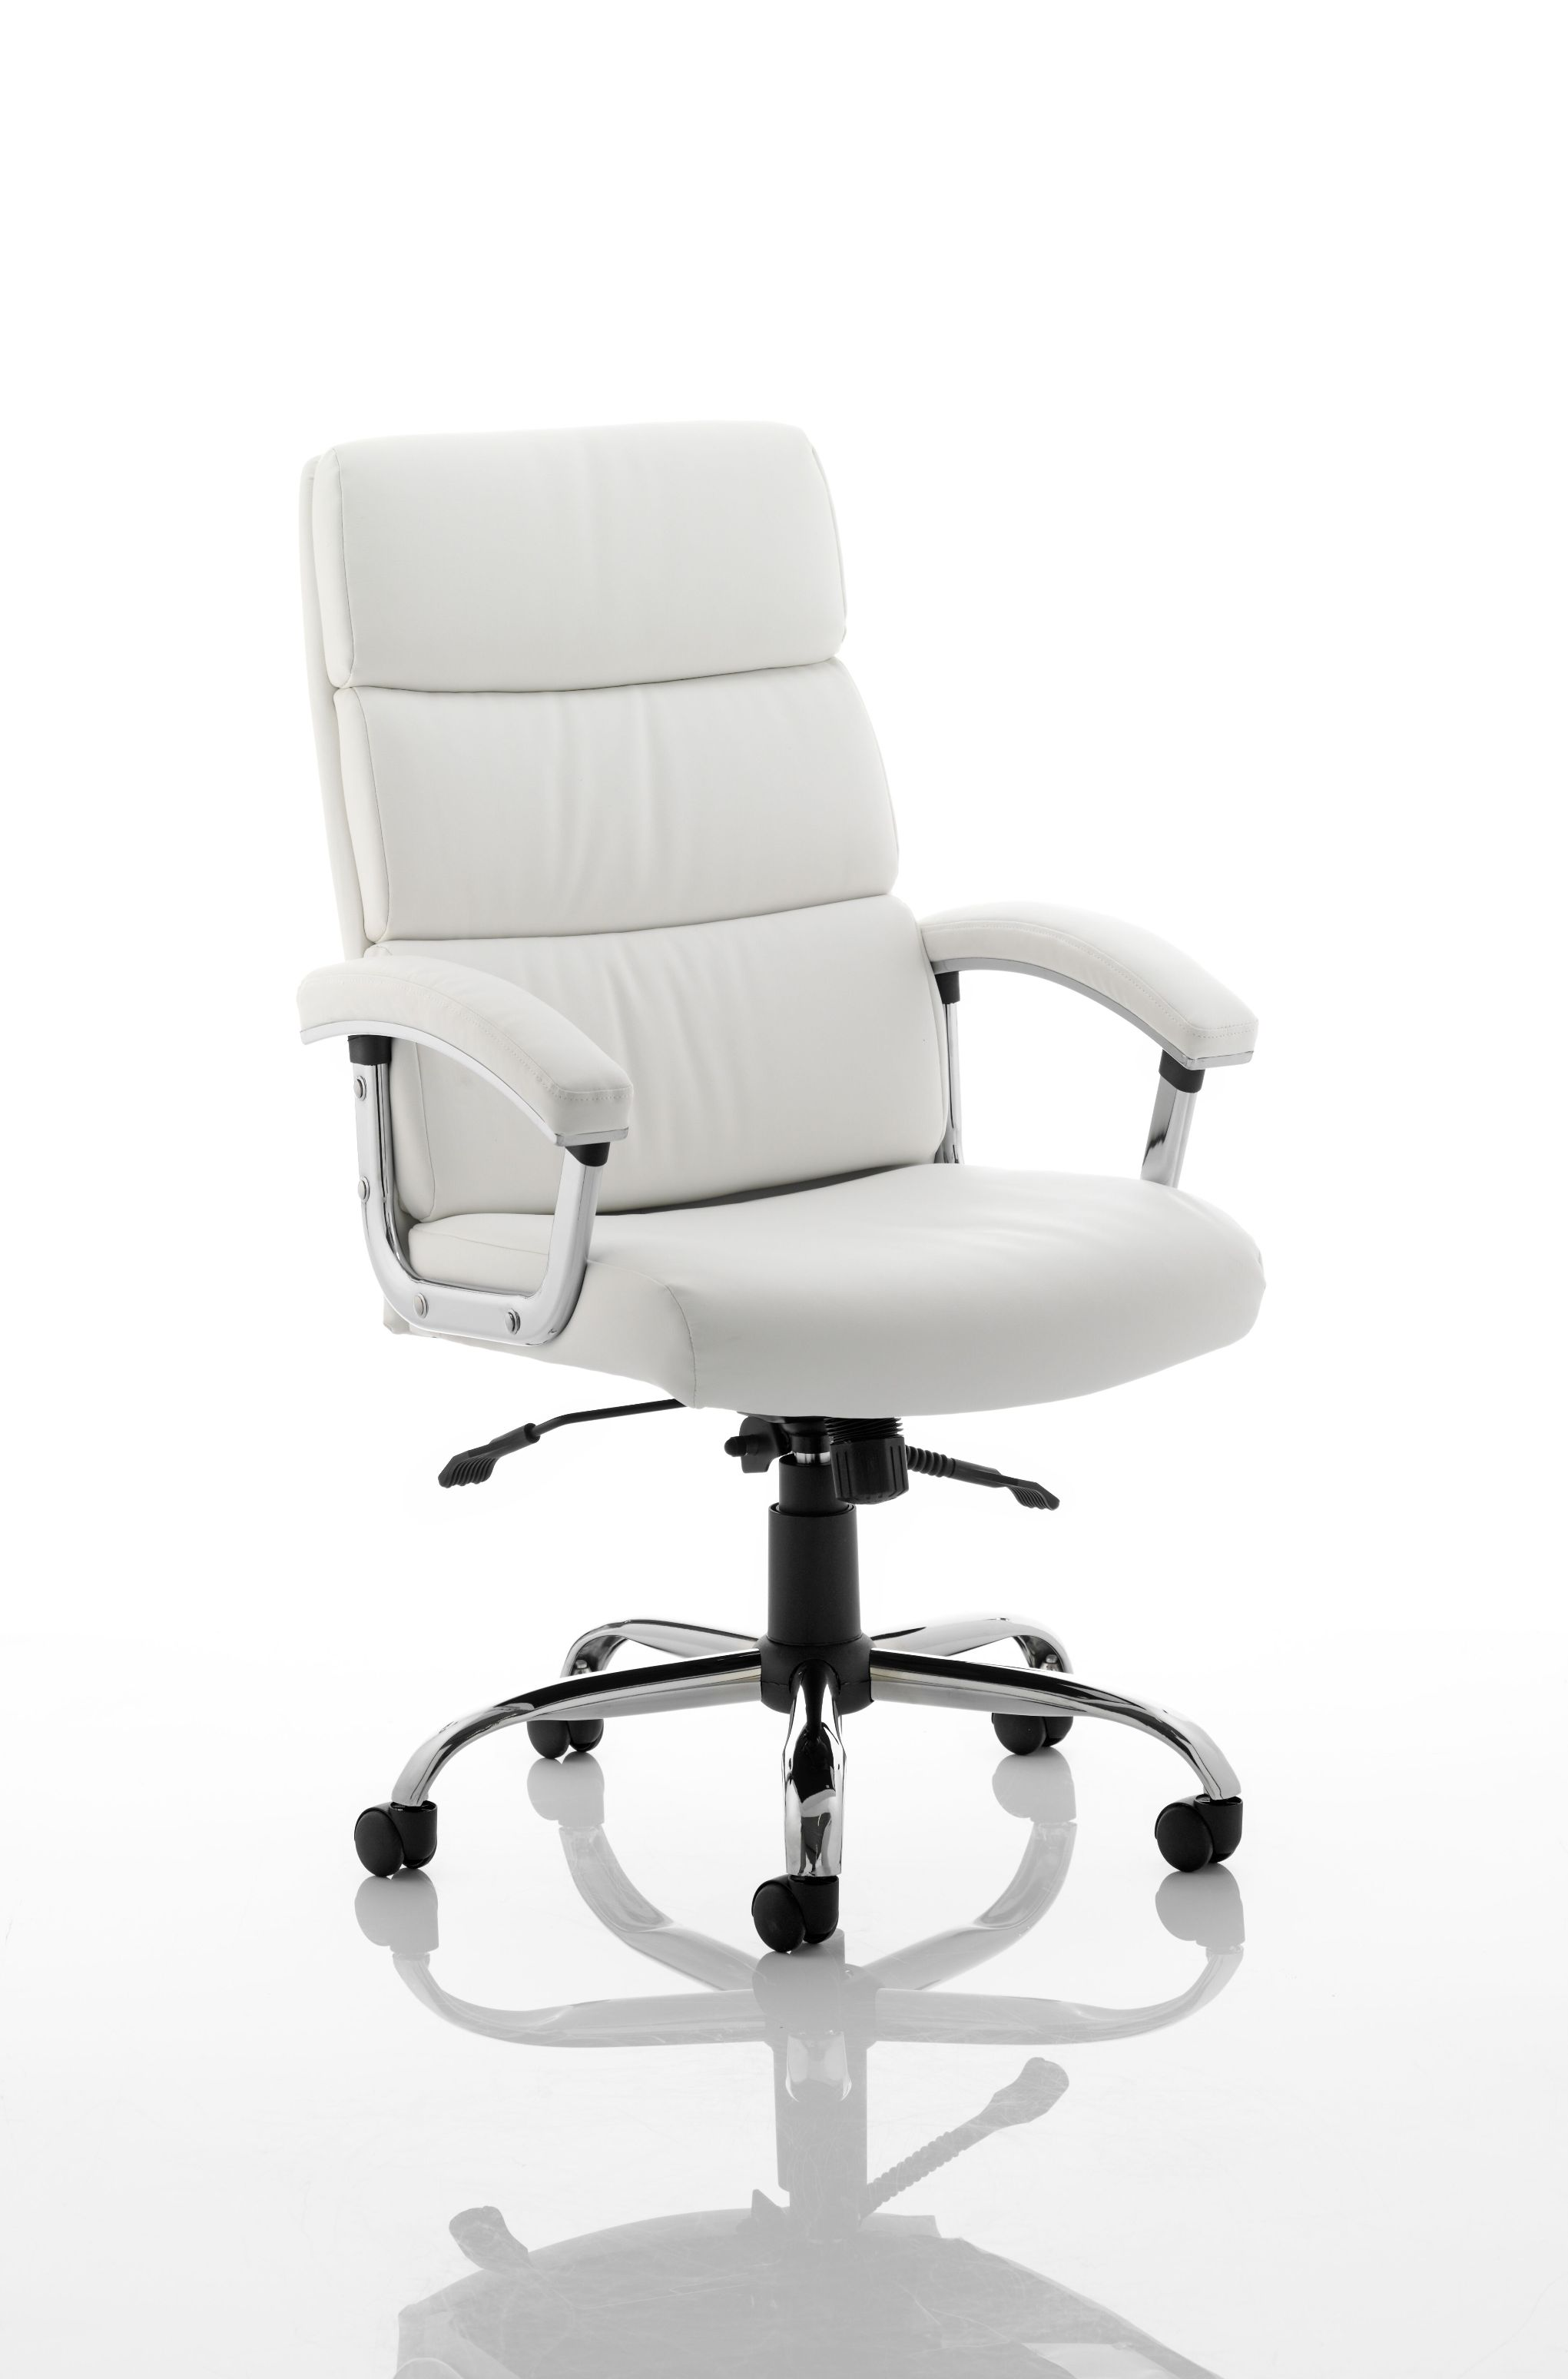 High Back Desk Chair White Leather Executive Office Chairs Office Chairs Uk